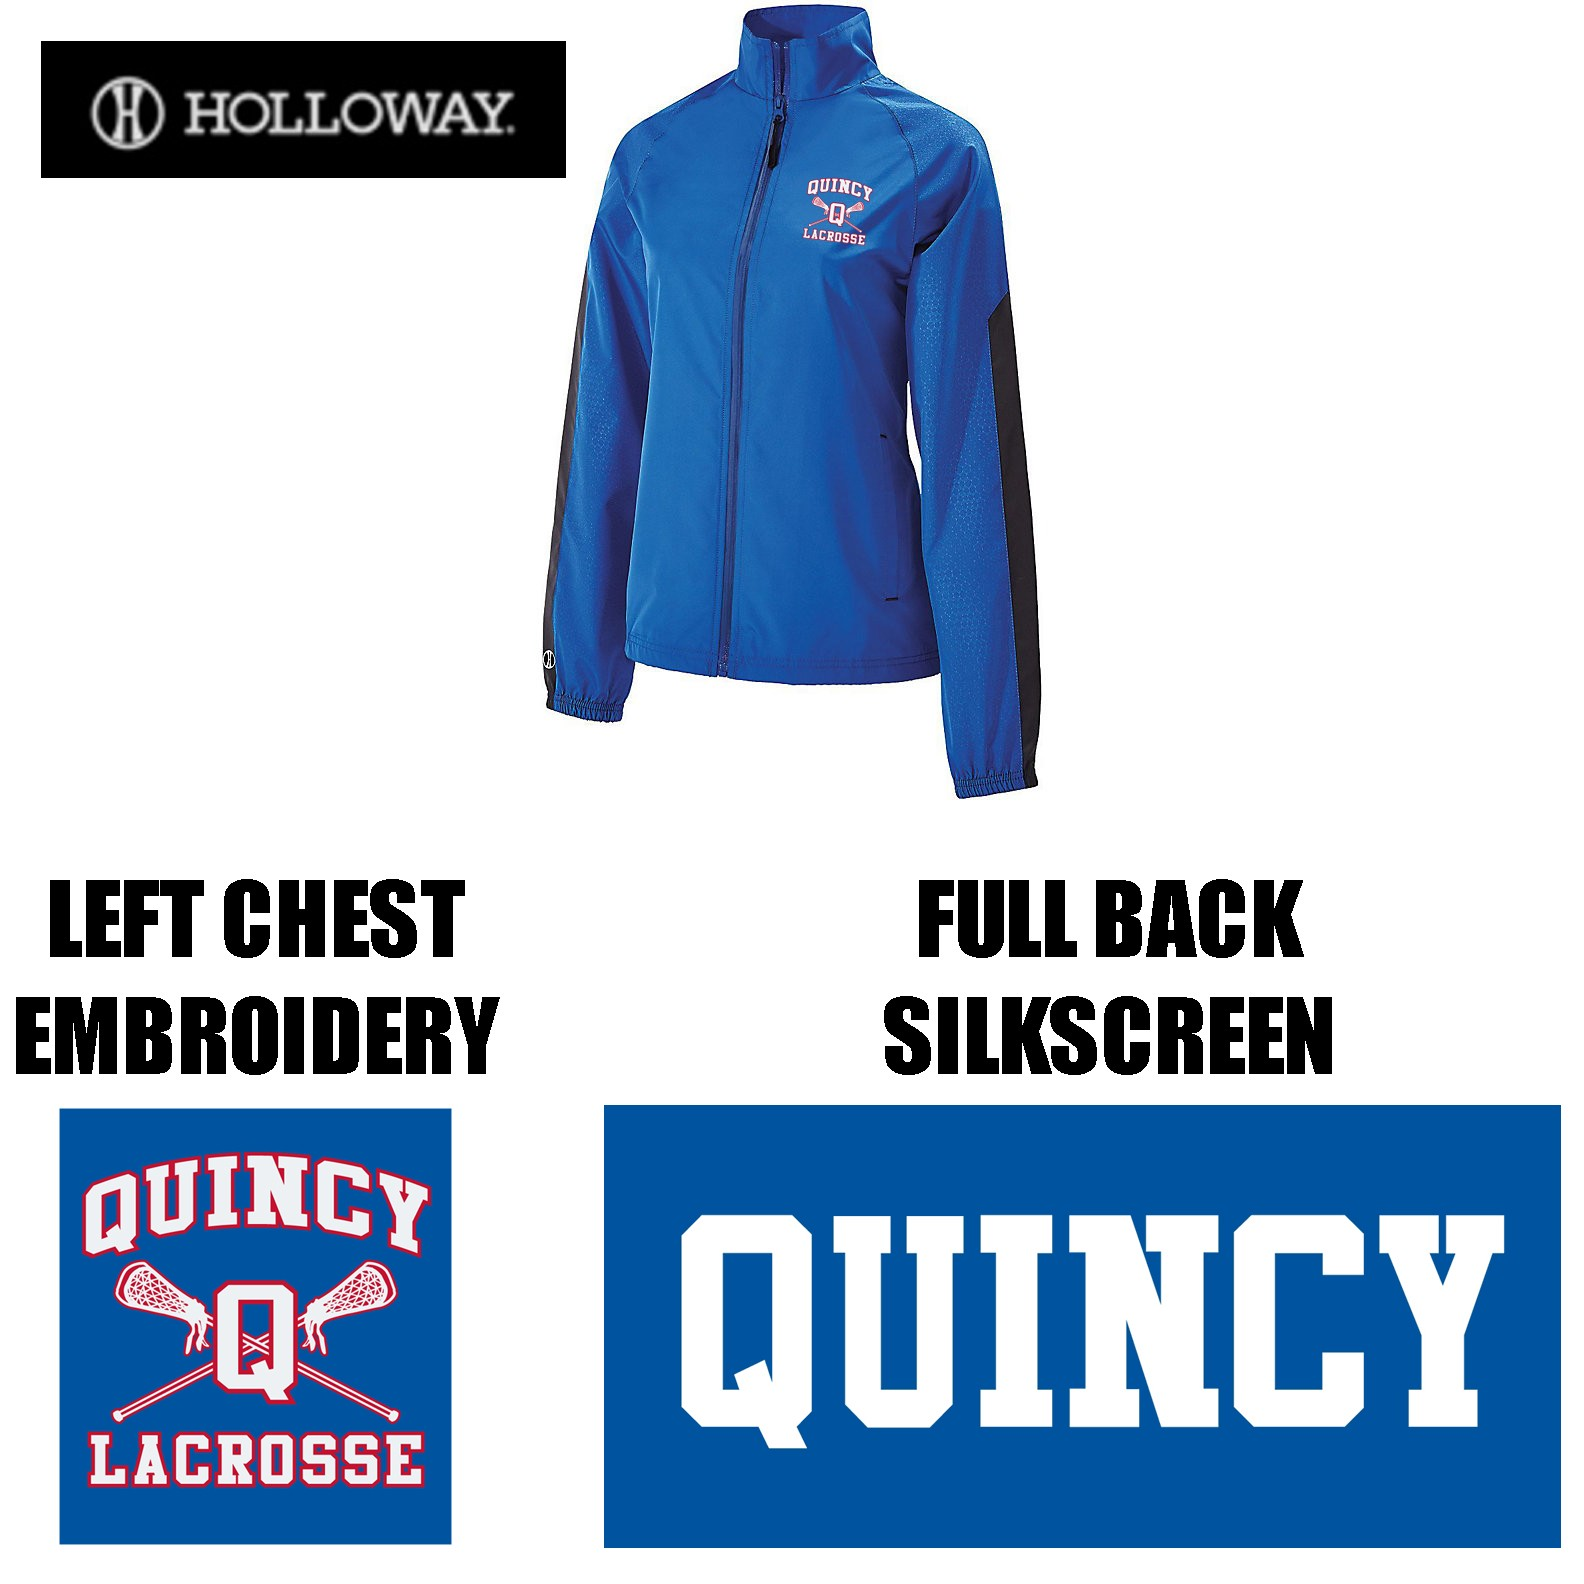 Quincy Lacrosse Holloway Brand Bionic Jacket, Ladies Fit